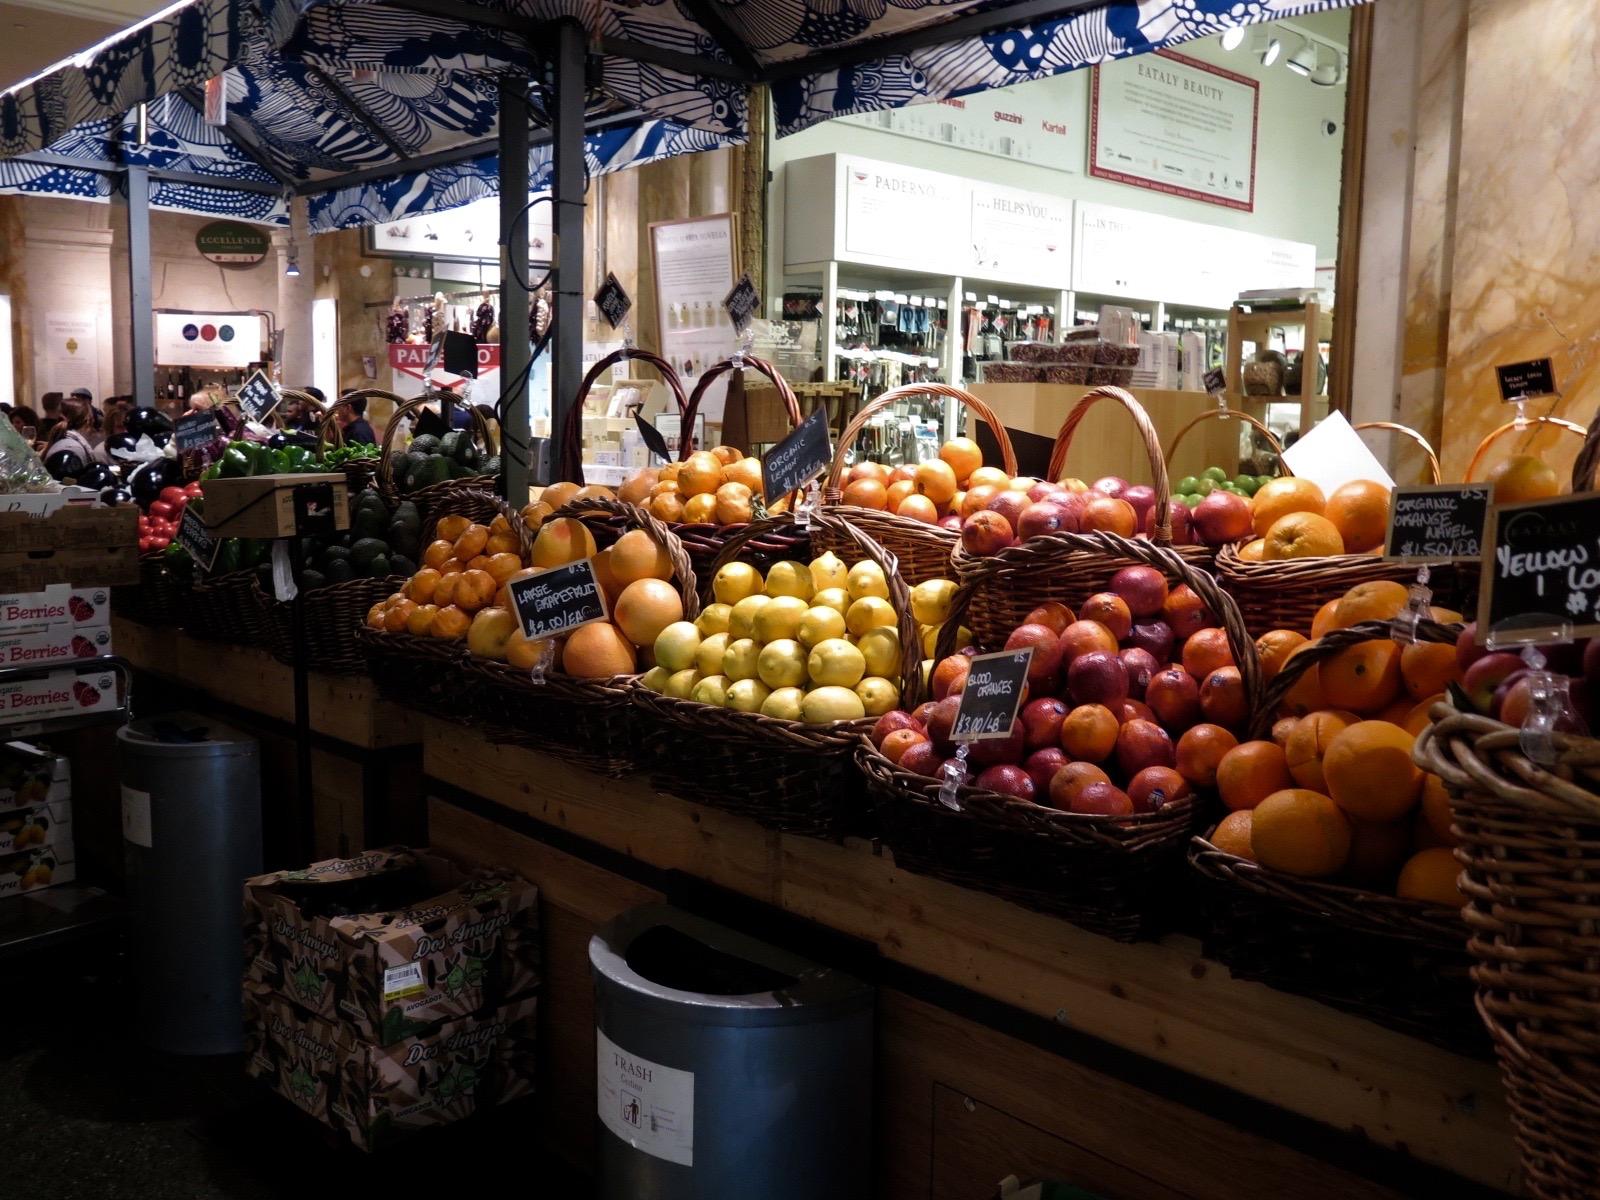 Fruit Flower Baskets Vancouver : Eating up eataly creators vancouver